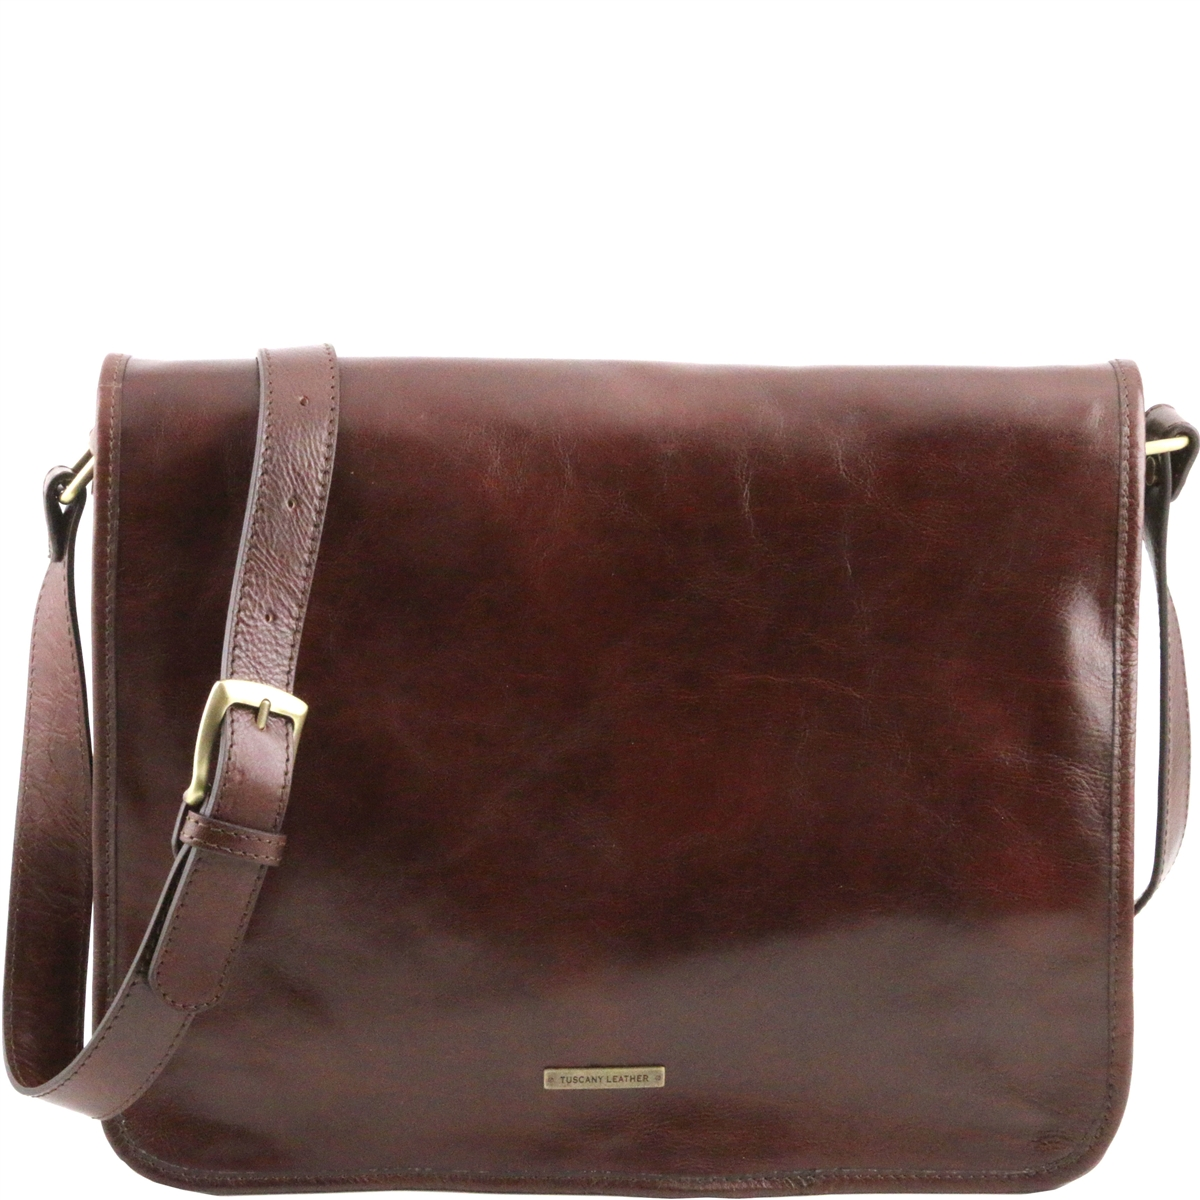 ae6147a132 Tuscany Leather TL141254 Men s Messenger Bag - Large - Brown